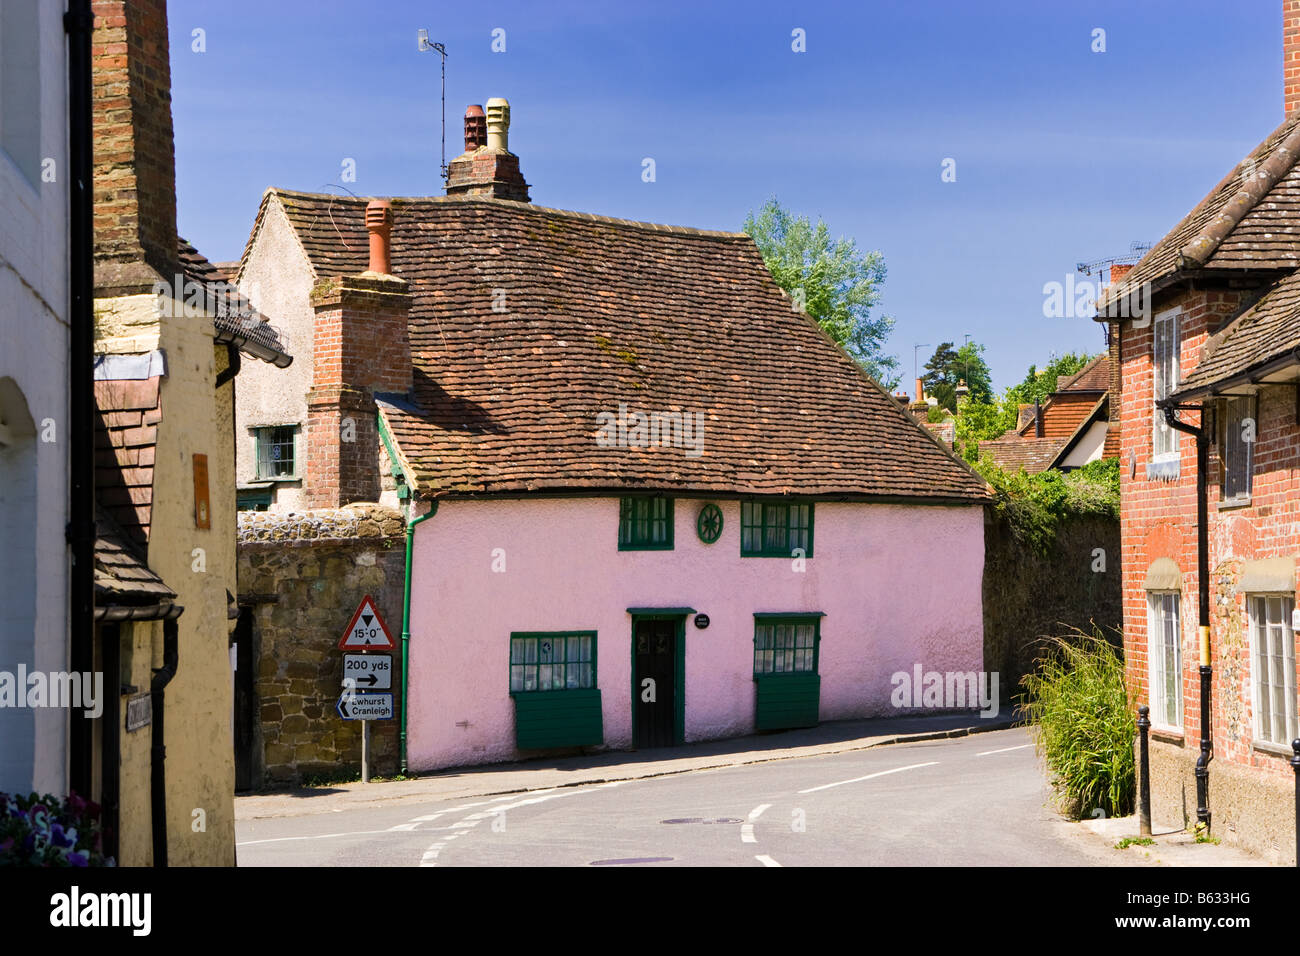 Traditional small medieval pink house in the old village of Shere, Surrey, England, UK - Stock Image